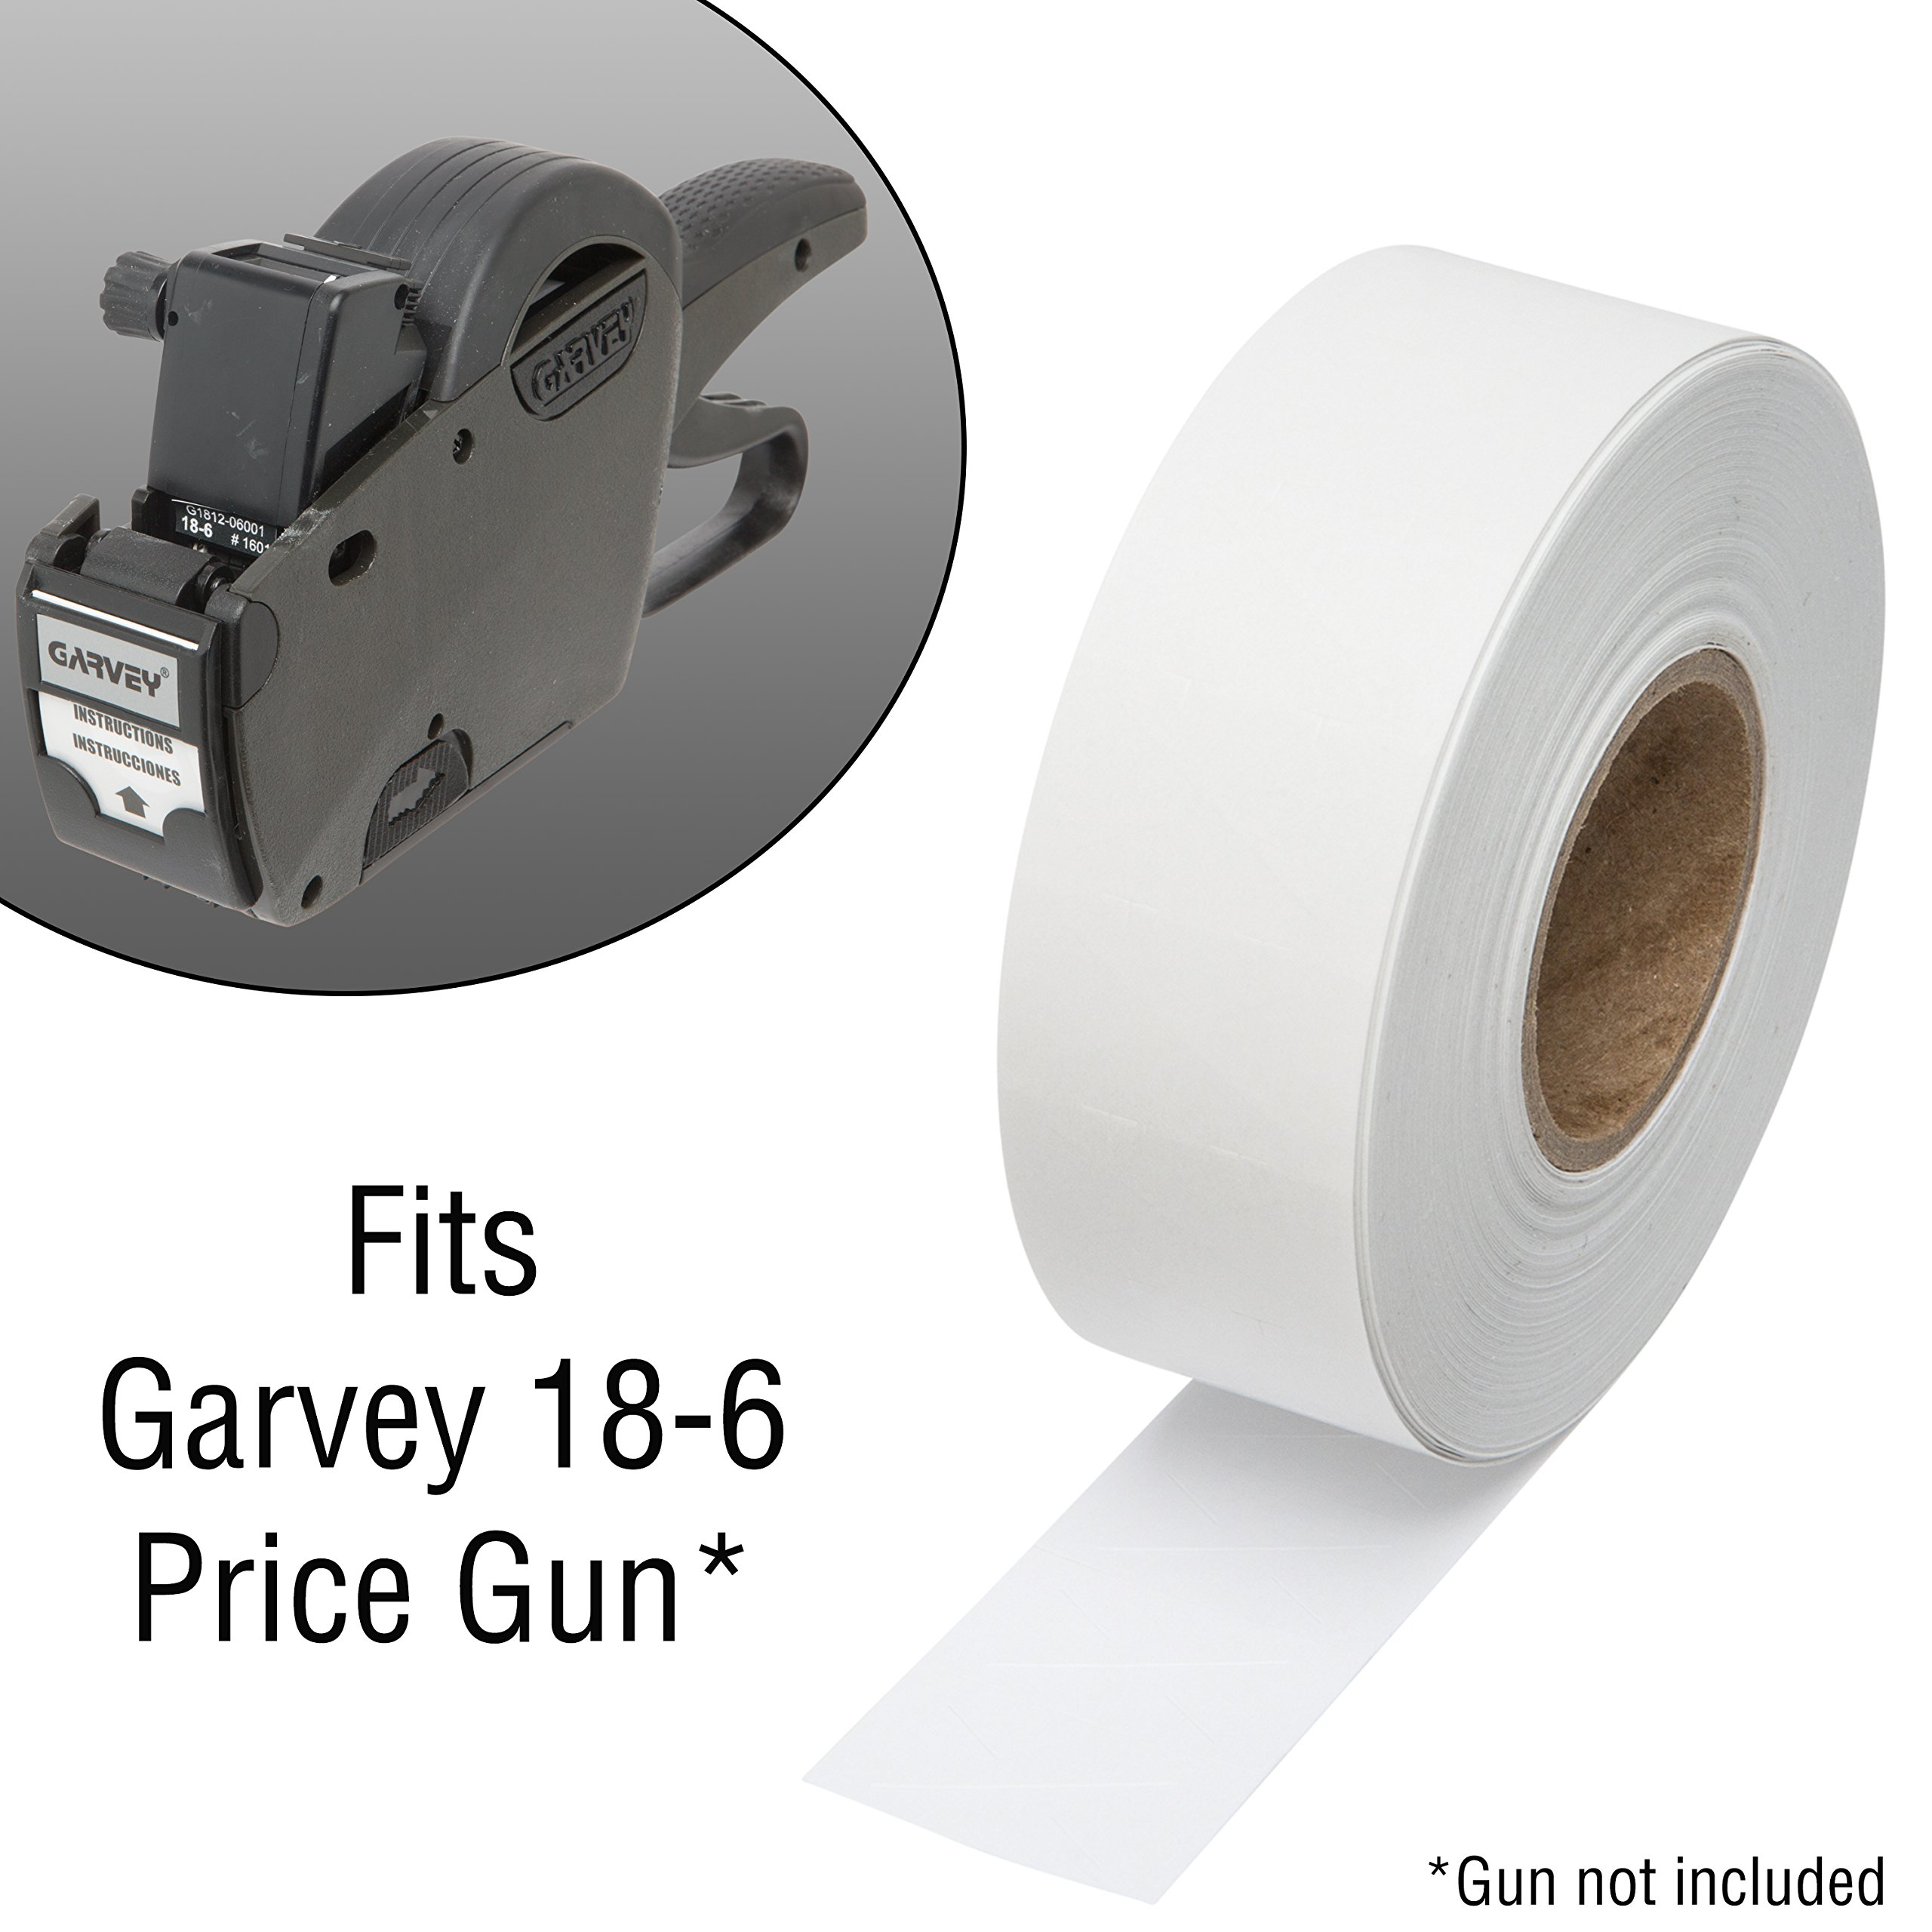 1812 White Pricing Labels for Garvey 18-6 One Line Price Gun – 10 Sleeves – 140,000 Price Marking Labels – with Bonus Ink Rolls by Perco (Image #3)